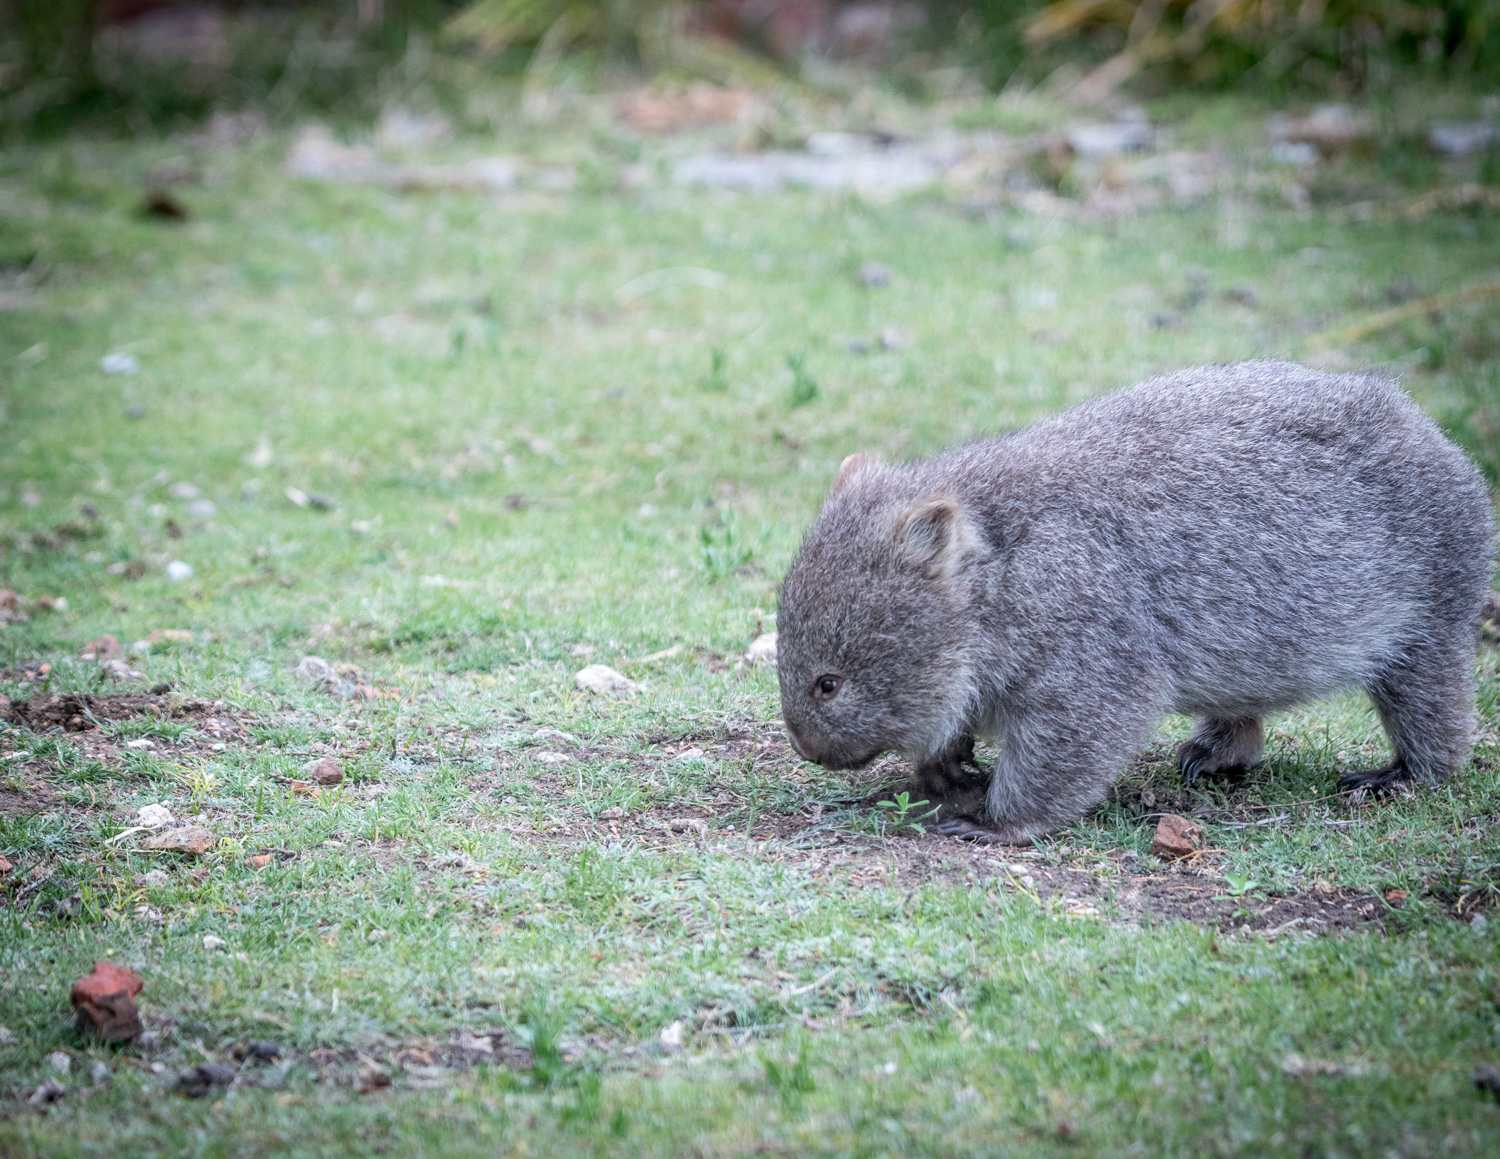 Where to see wombats in the wild close to Sydney: Bundanoon